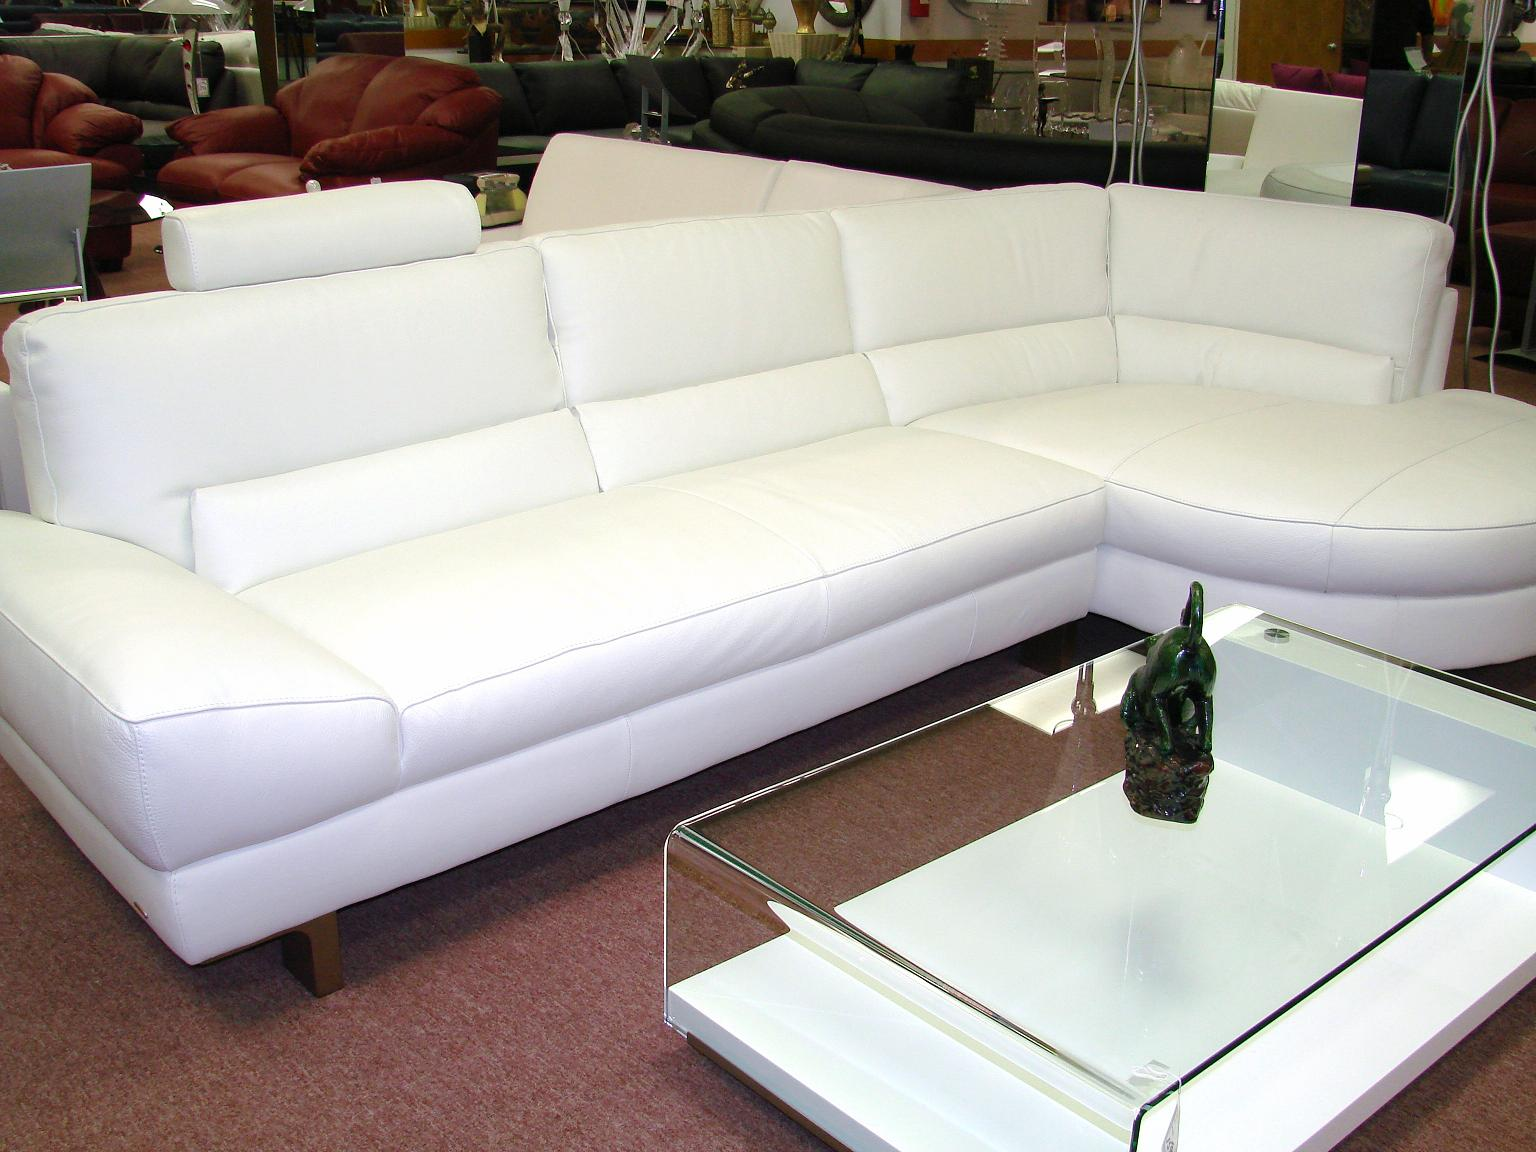 italsofa loveseat leather corner sofa gumtree london natuzzi sofas and sectionals by interior concepts